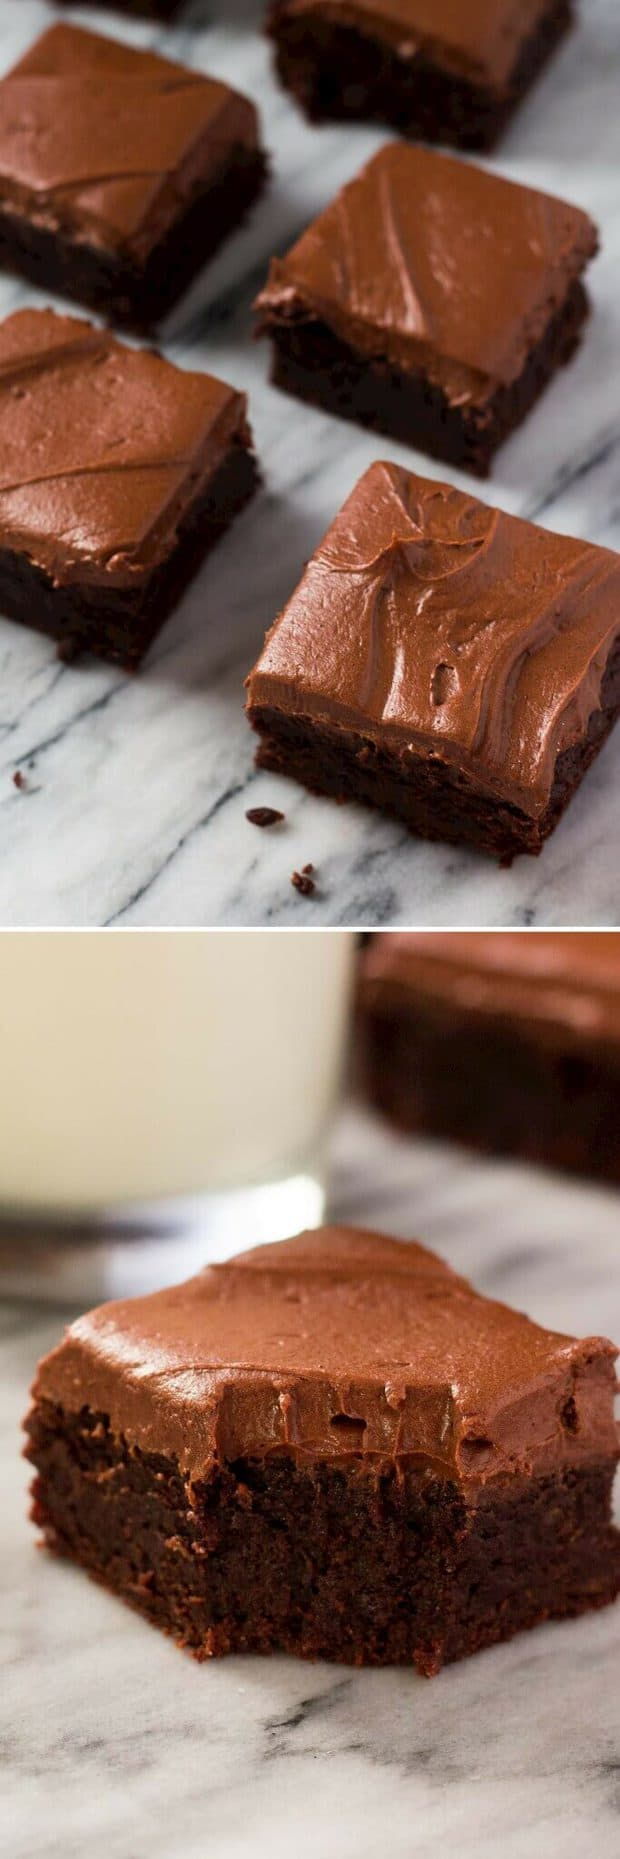 Fudge Brownies with Chocolate Frosting are super moist, super fudgy and slathered with a thick layer of cream cheese chocolate frosting – these brownies will be your new favorite.